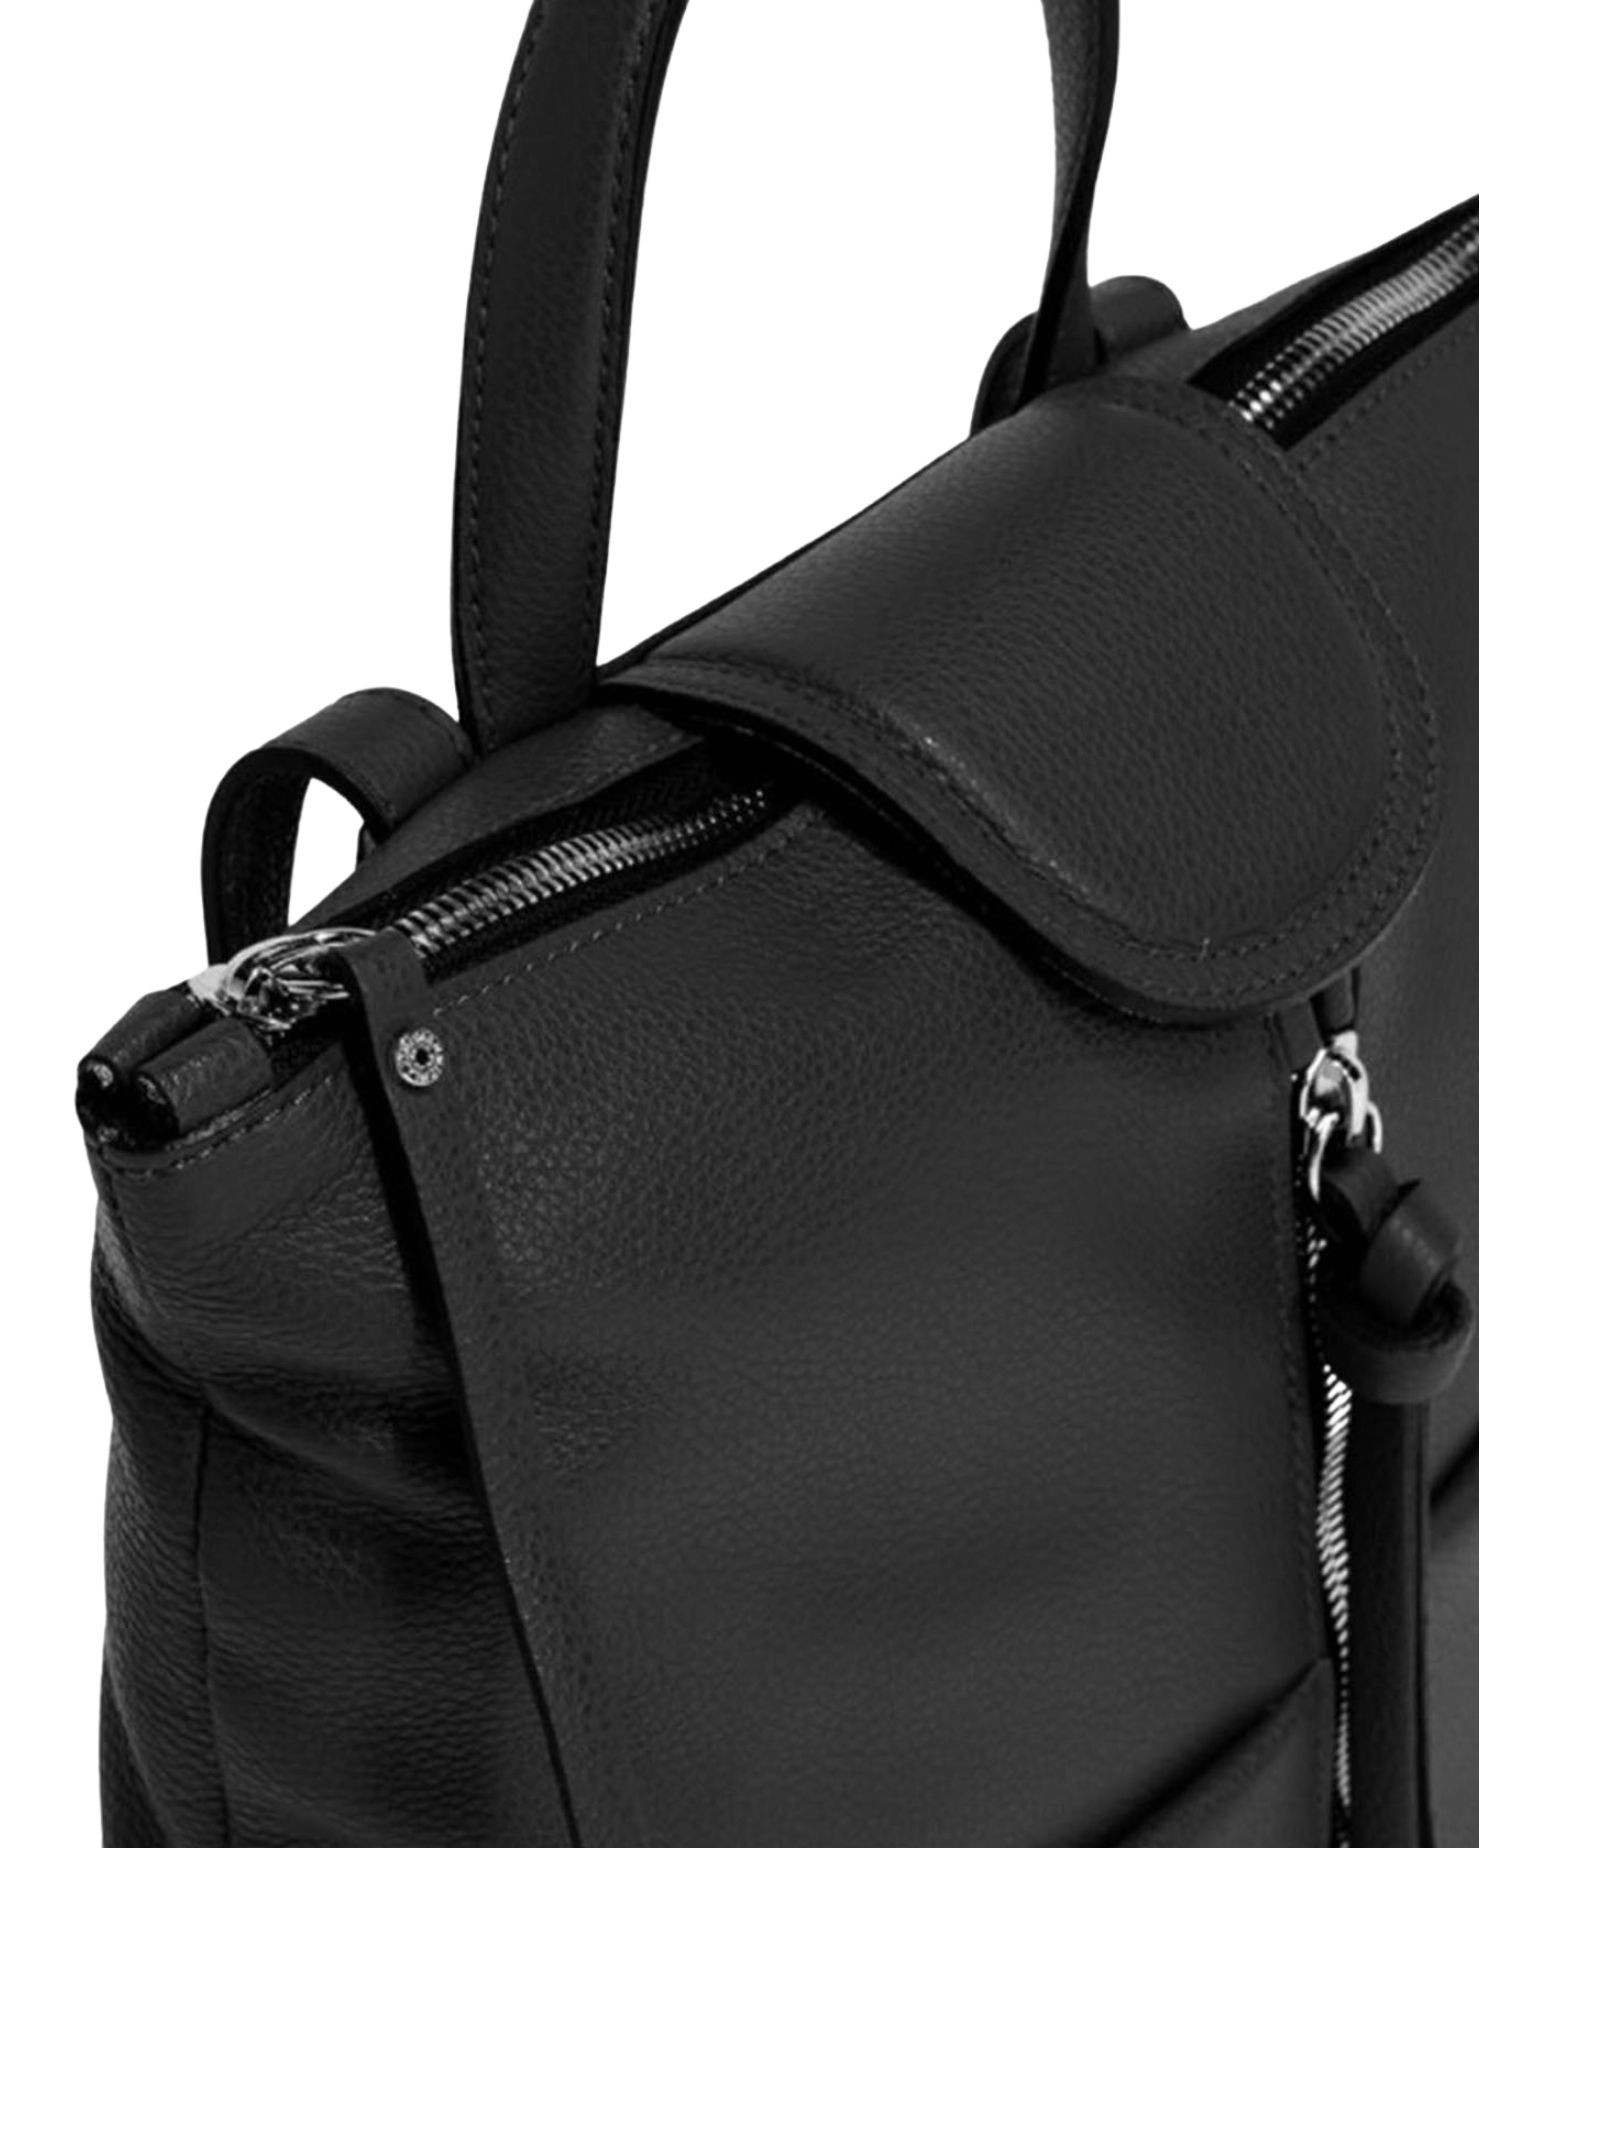 Jade Woman Backpack with Central Zipper In Black Leather With Leather Handle And Adjustable Straps Gianni Chiarini | Bags and backpacks | ZN7040001